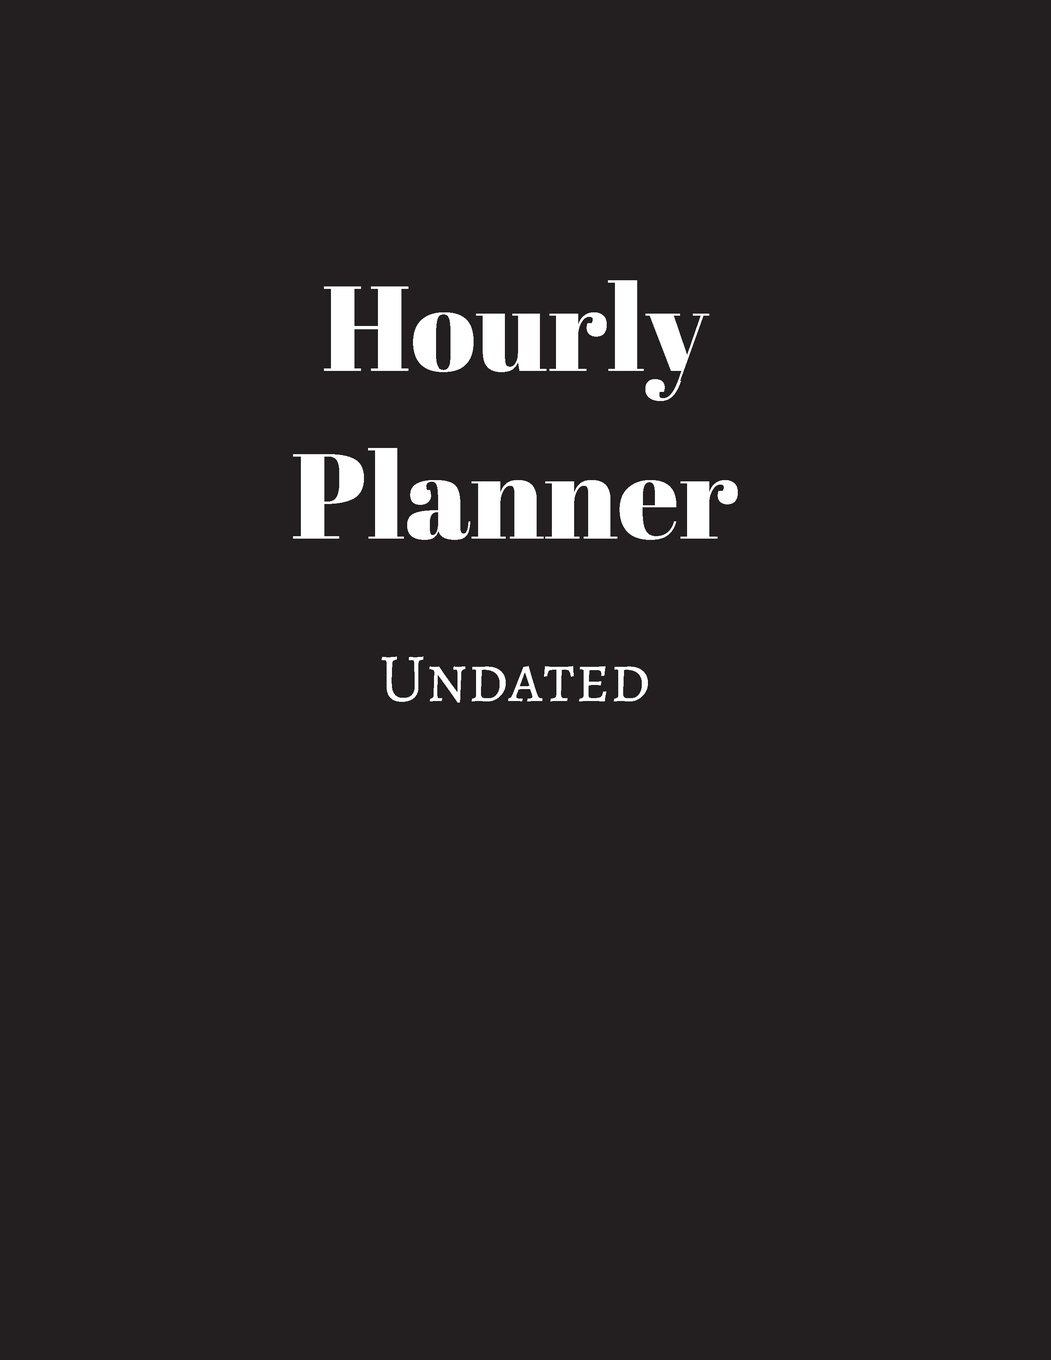 Download Undated Hourly Planner (Black): 52 Weeks Undated with Monthly Key Action Planner PDF